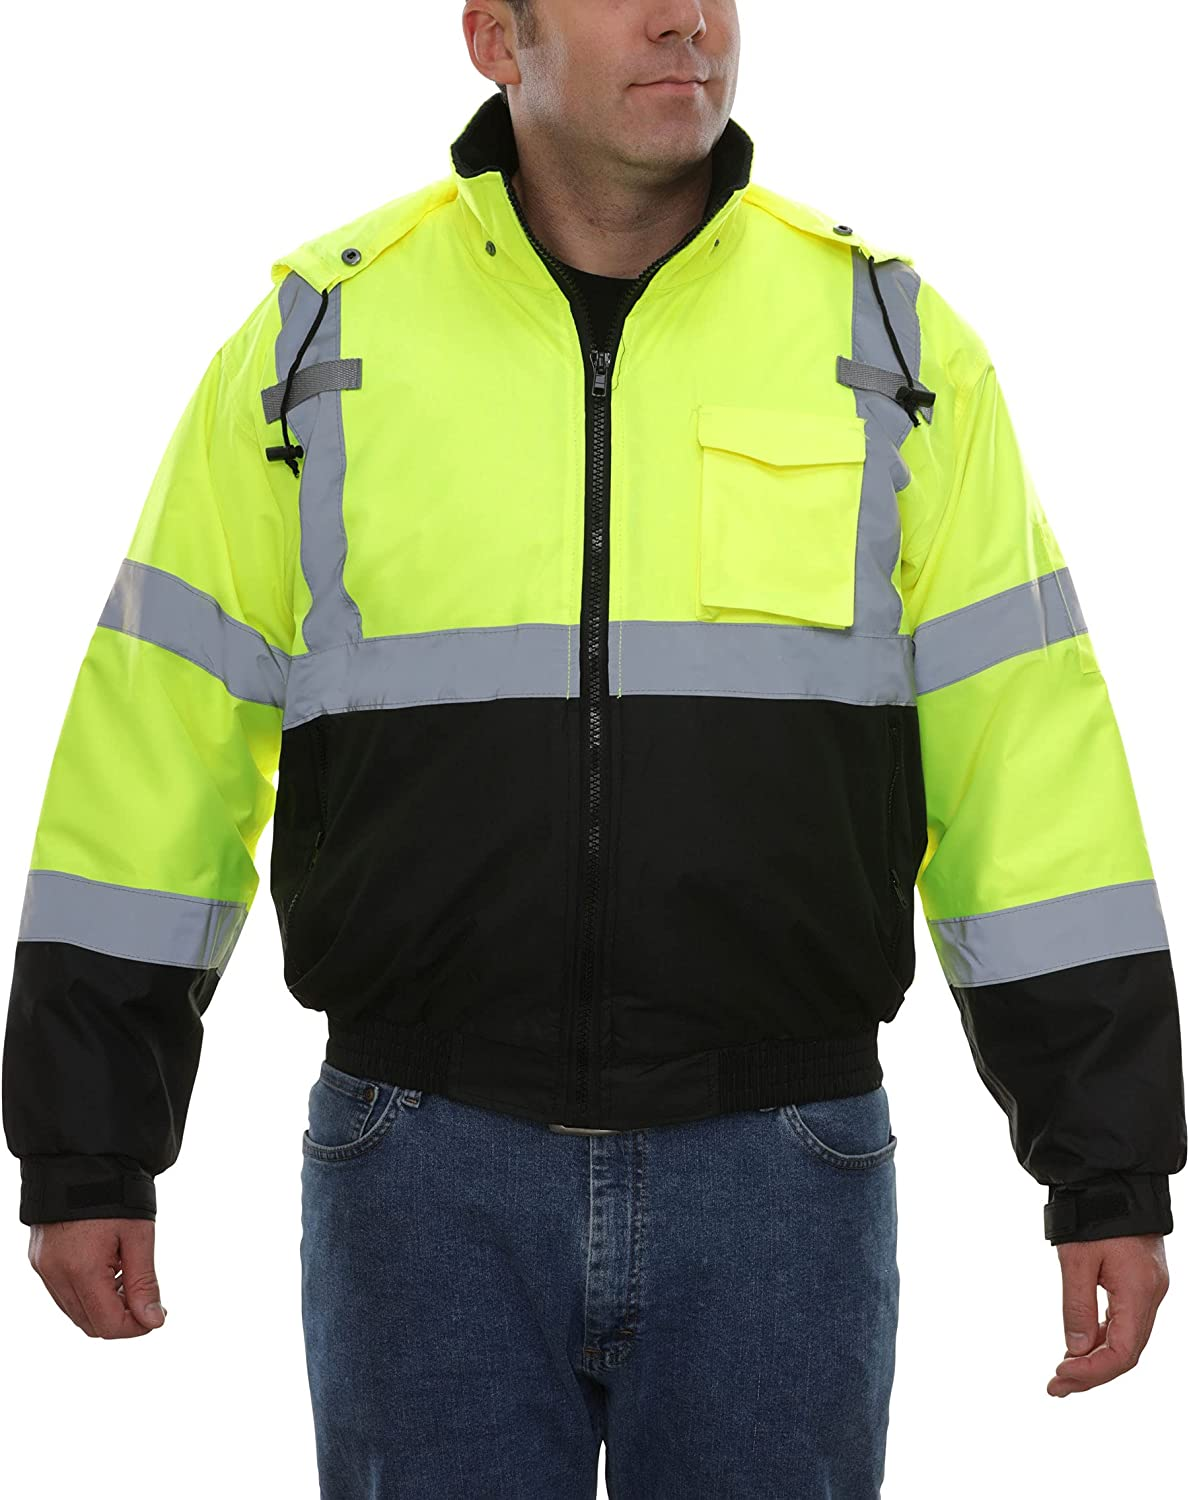 Reflective Max 63% OFF Apparel High Visibility Safety C ANSI Shipping included Bomber Jacket -